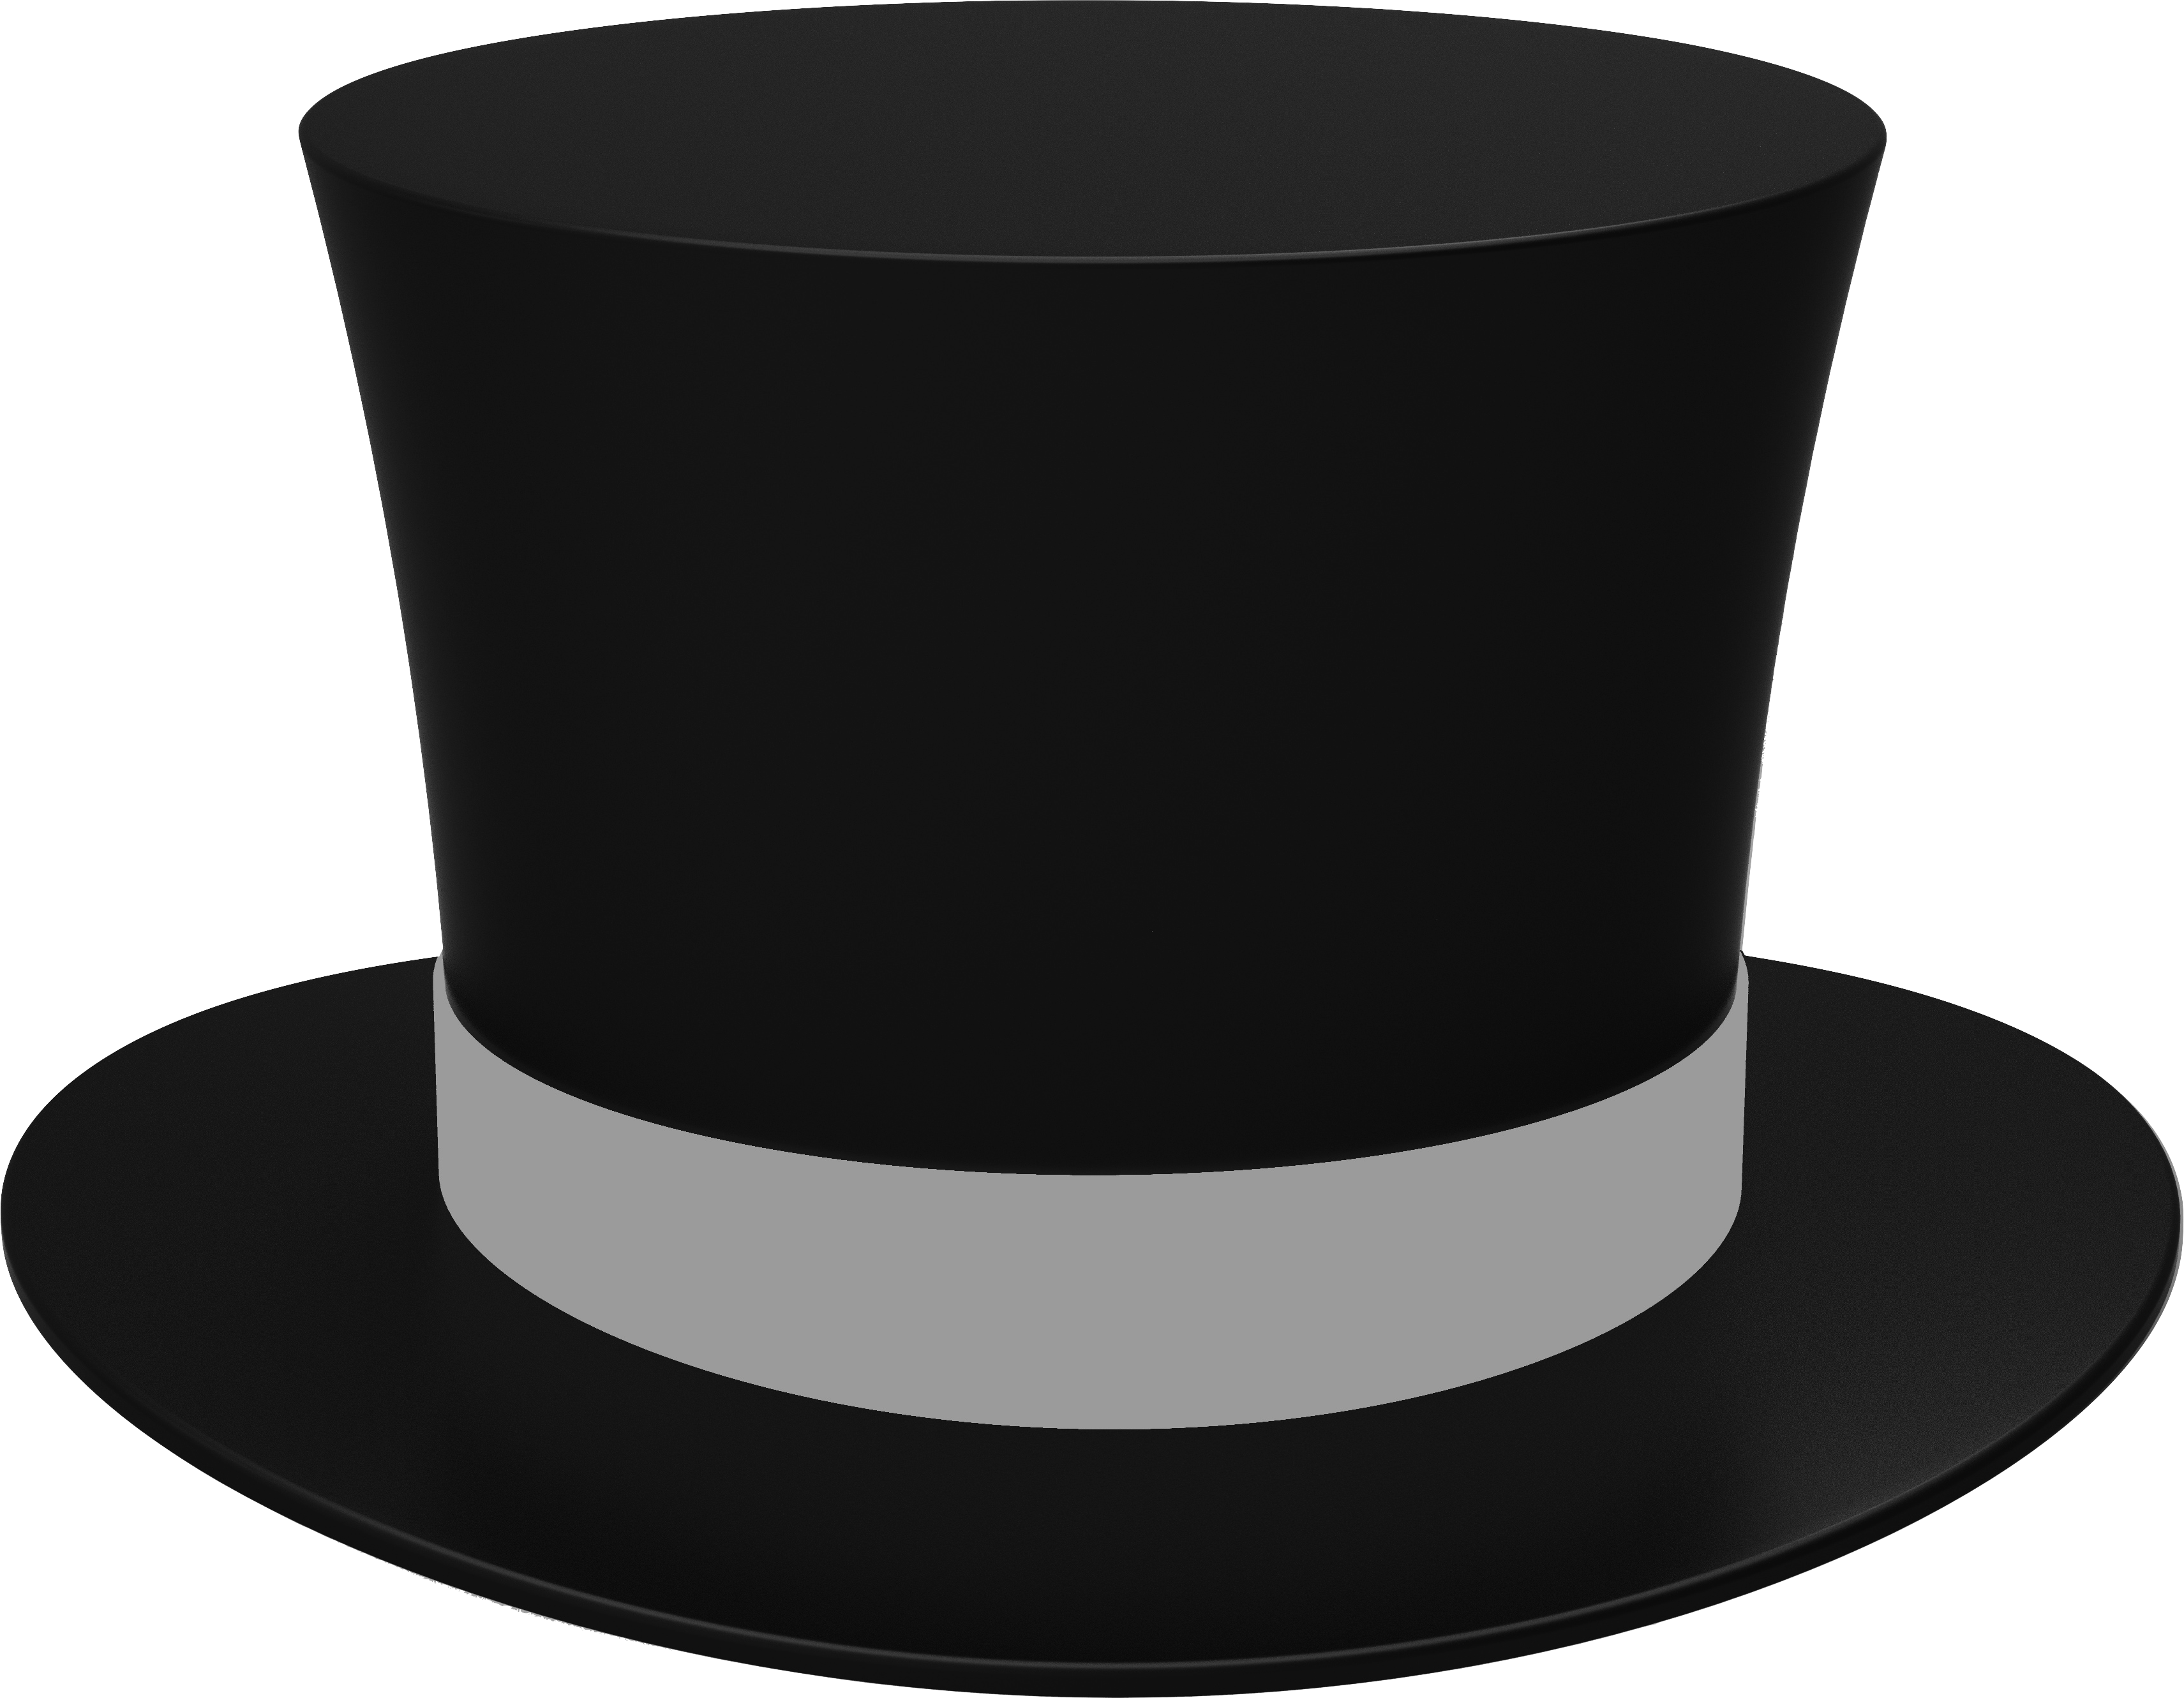 Black And White Hat Part : Hat png images free download